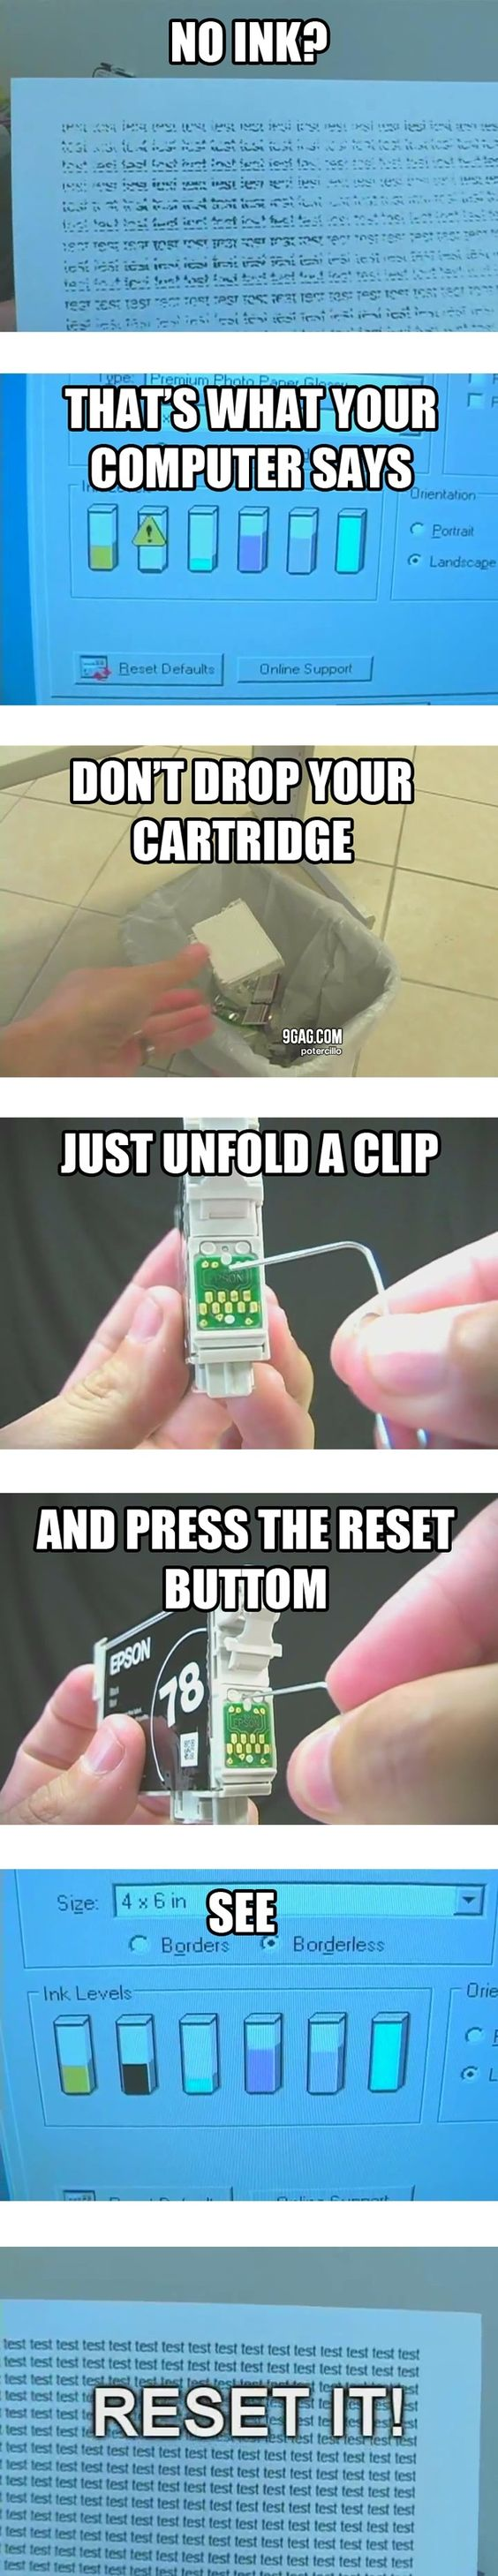 How to get the last ink out of the ink cartridge.